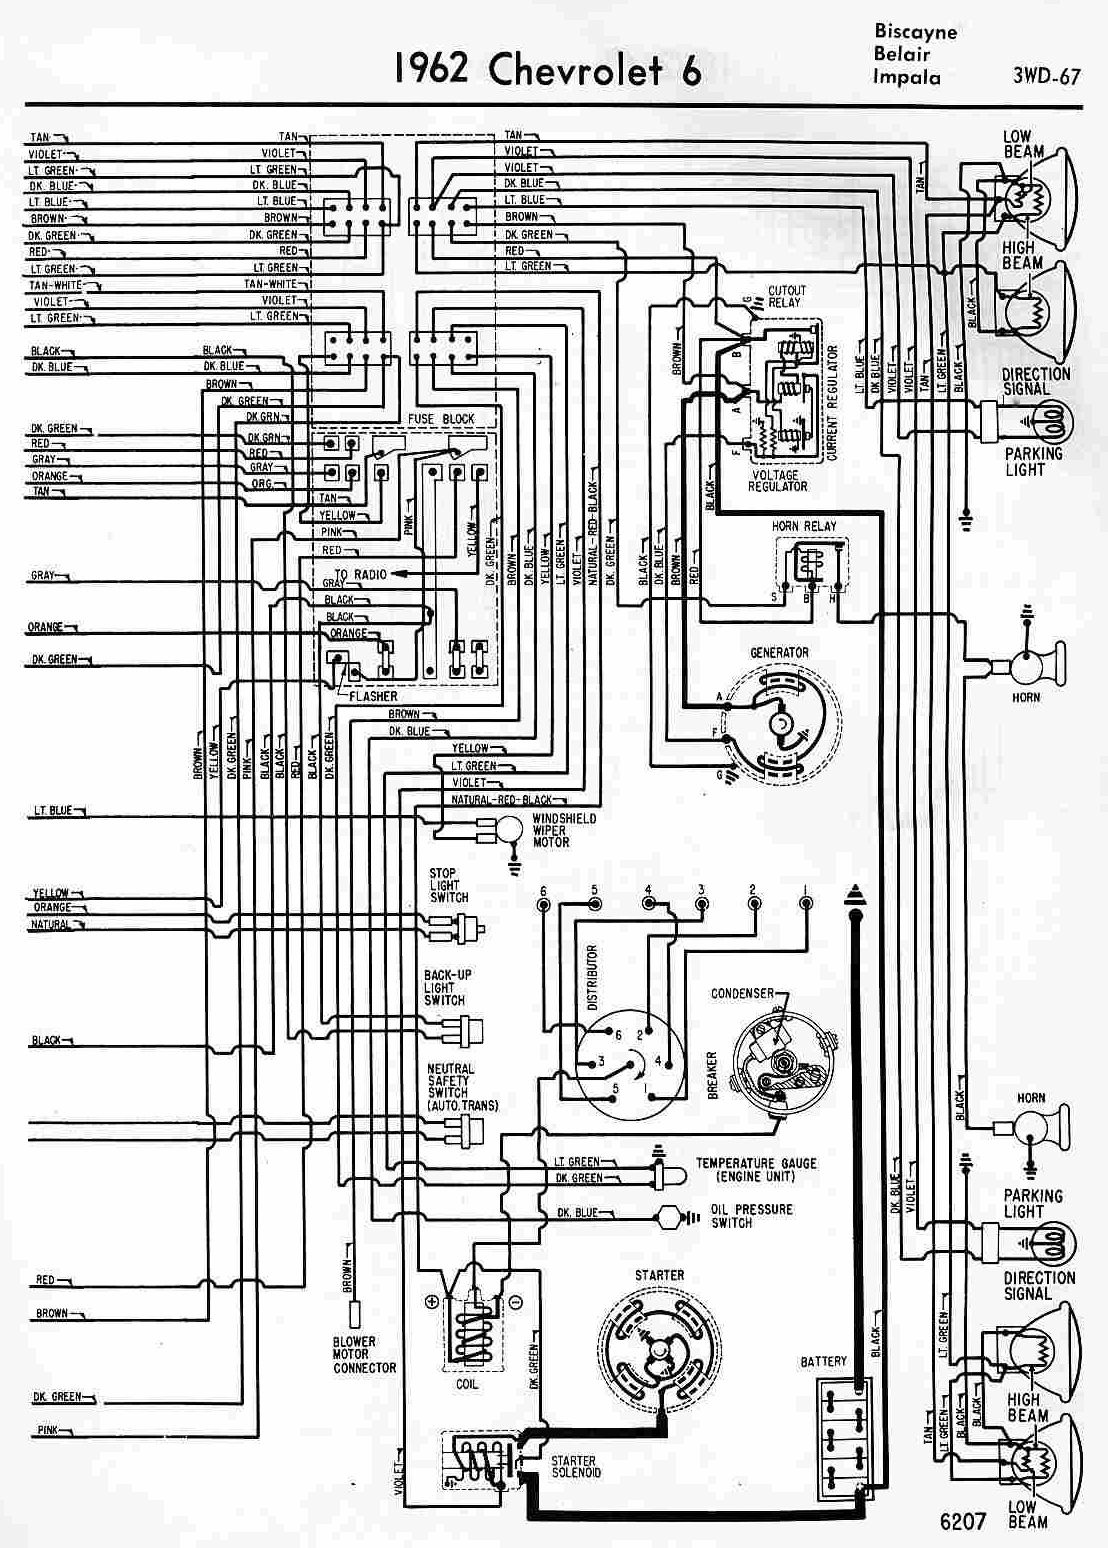 62 Biscayne Wiring Diagram Free For You 1971 Chevy Wiper 1962 Chevrolet 6 Belair And Impala Bel Air